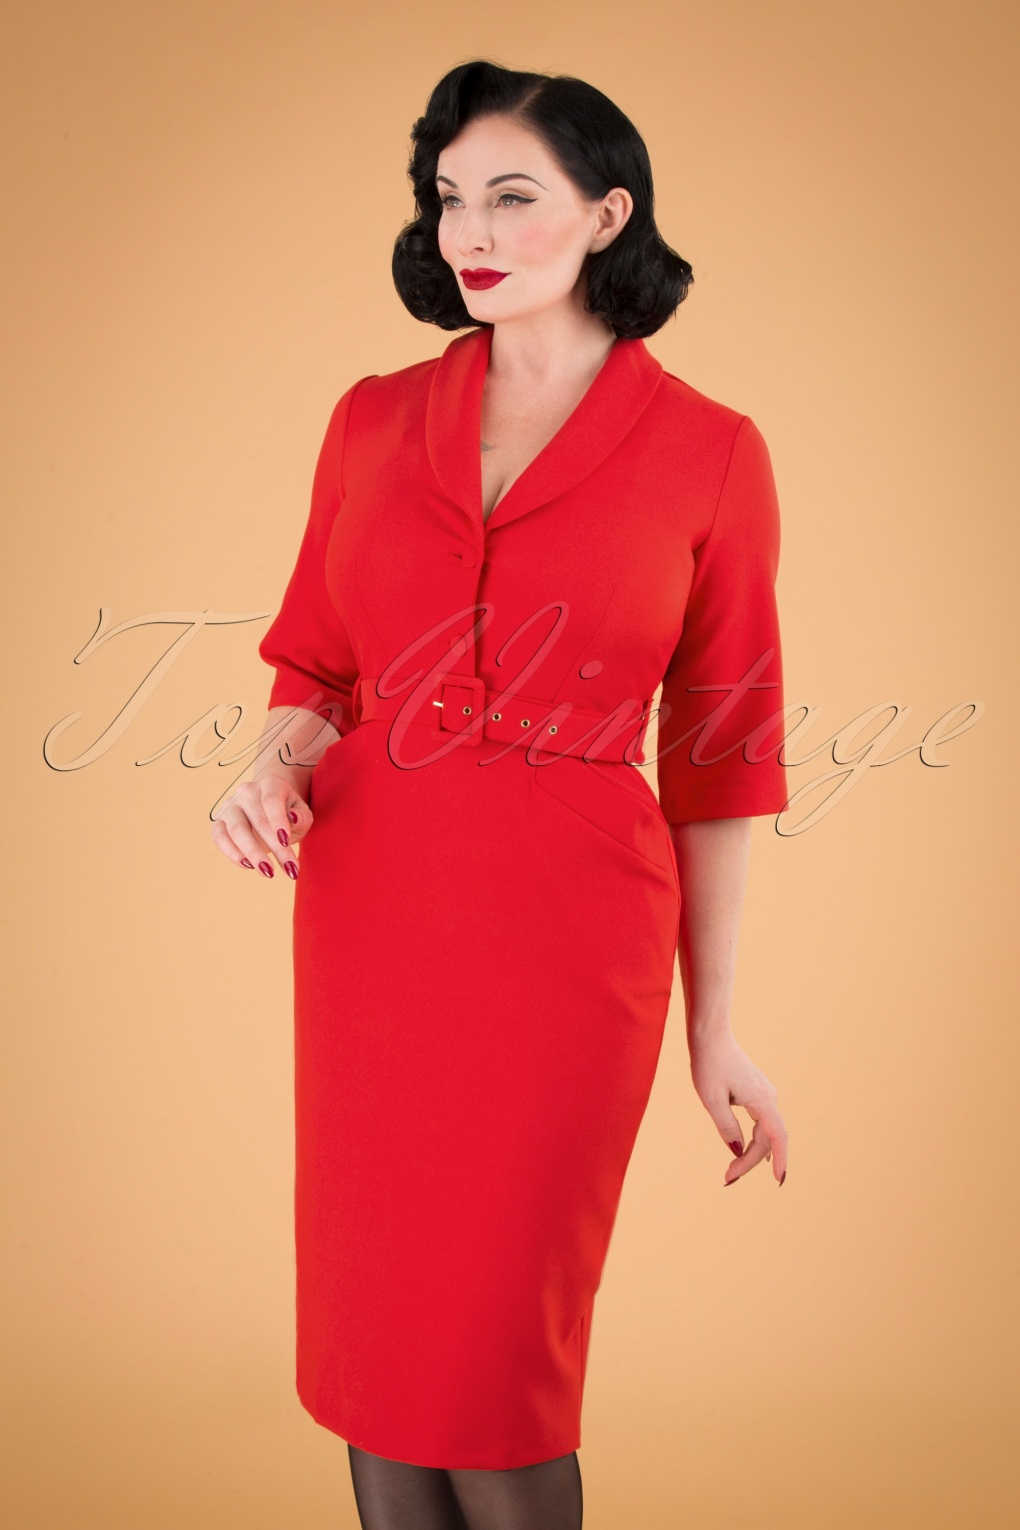 Wiggle Dresses | Pencil Dresses 40s, 50s, 60s 60s Sherri Pencil Dress in Bright Red £67.52 AT vintagedancer.com